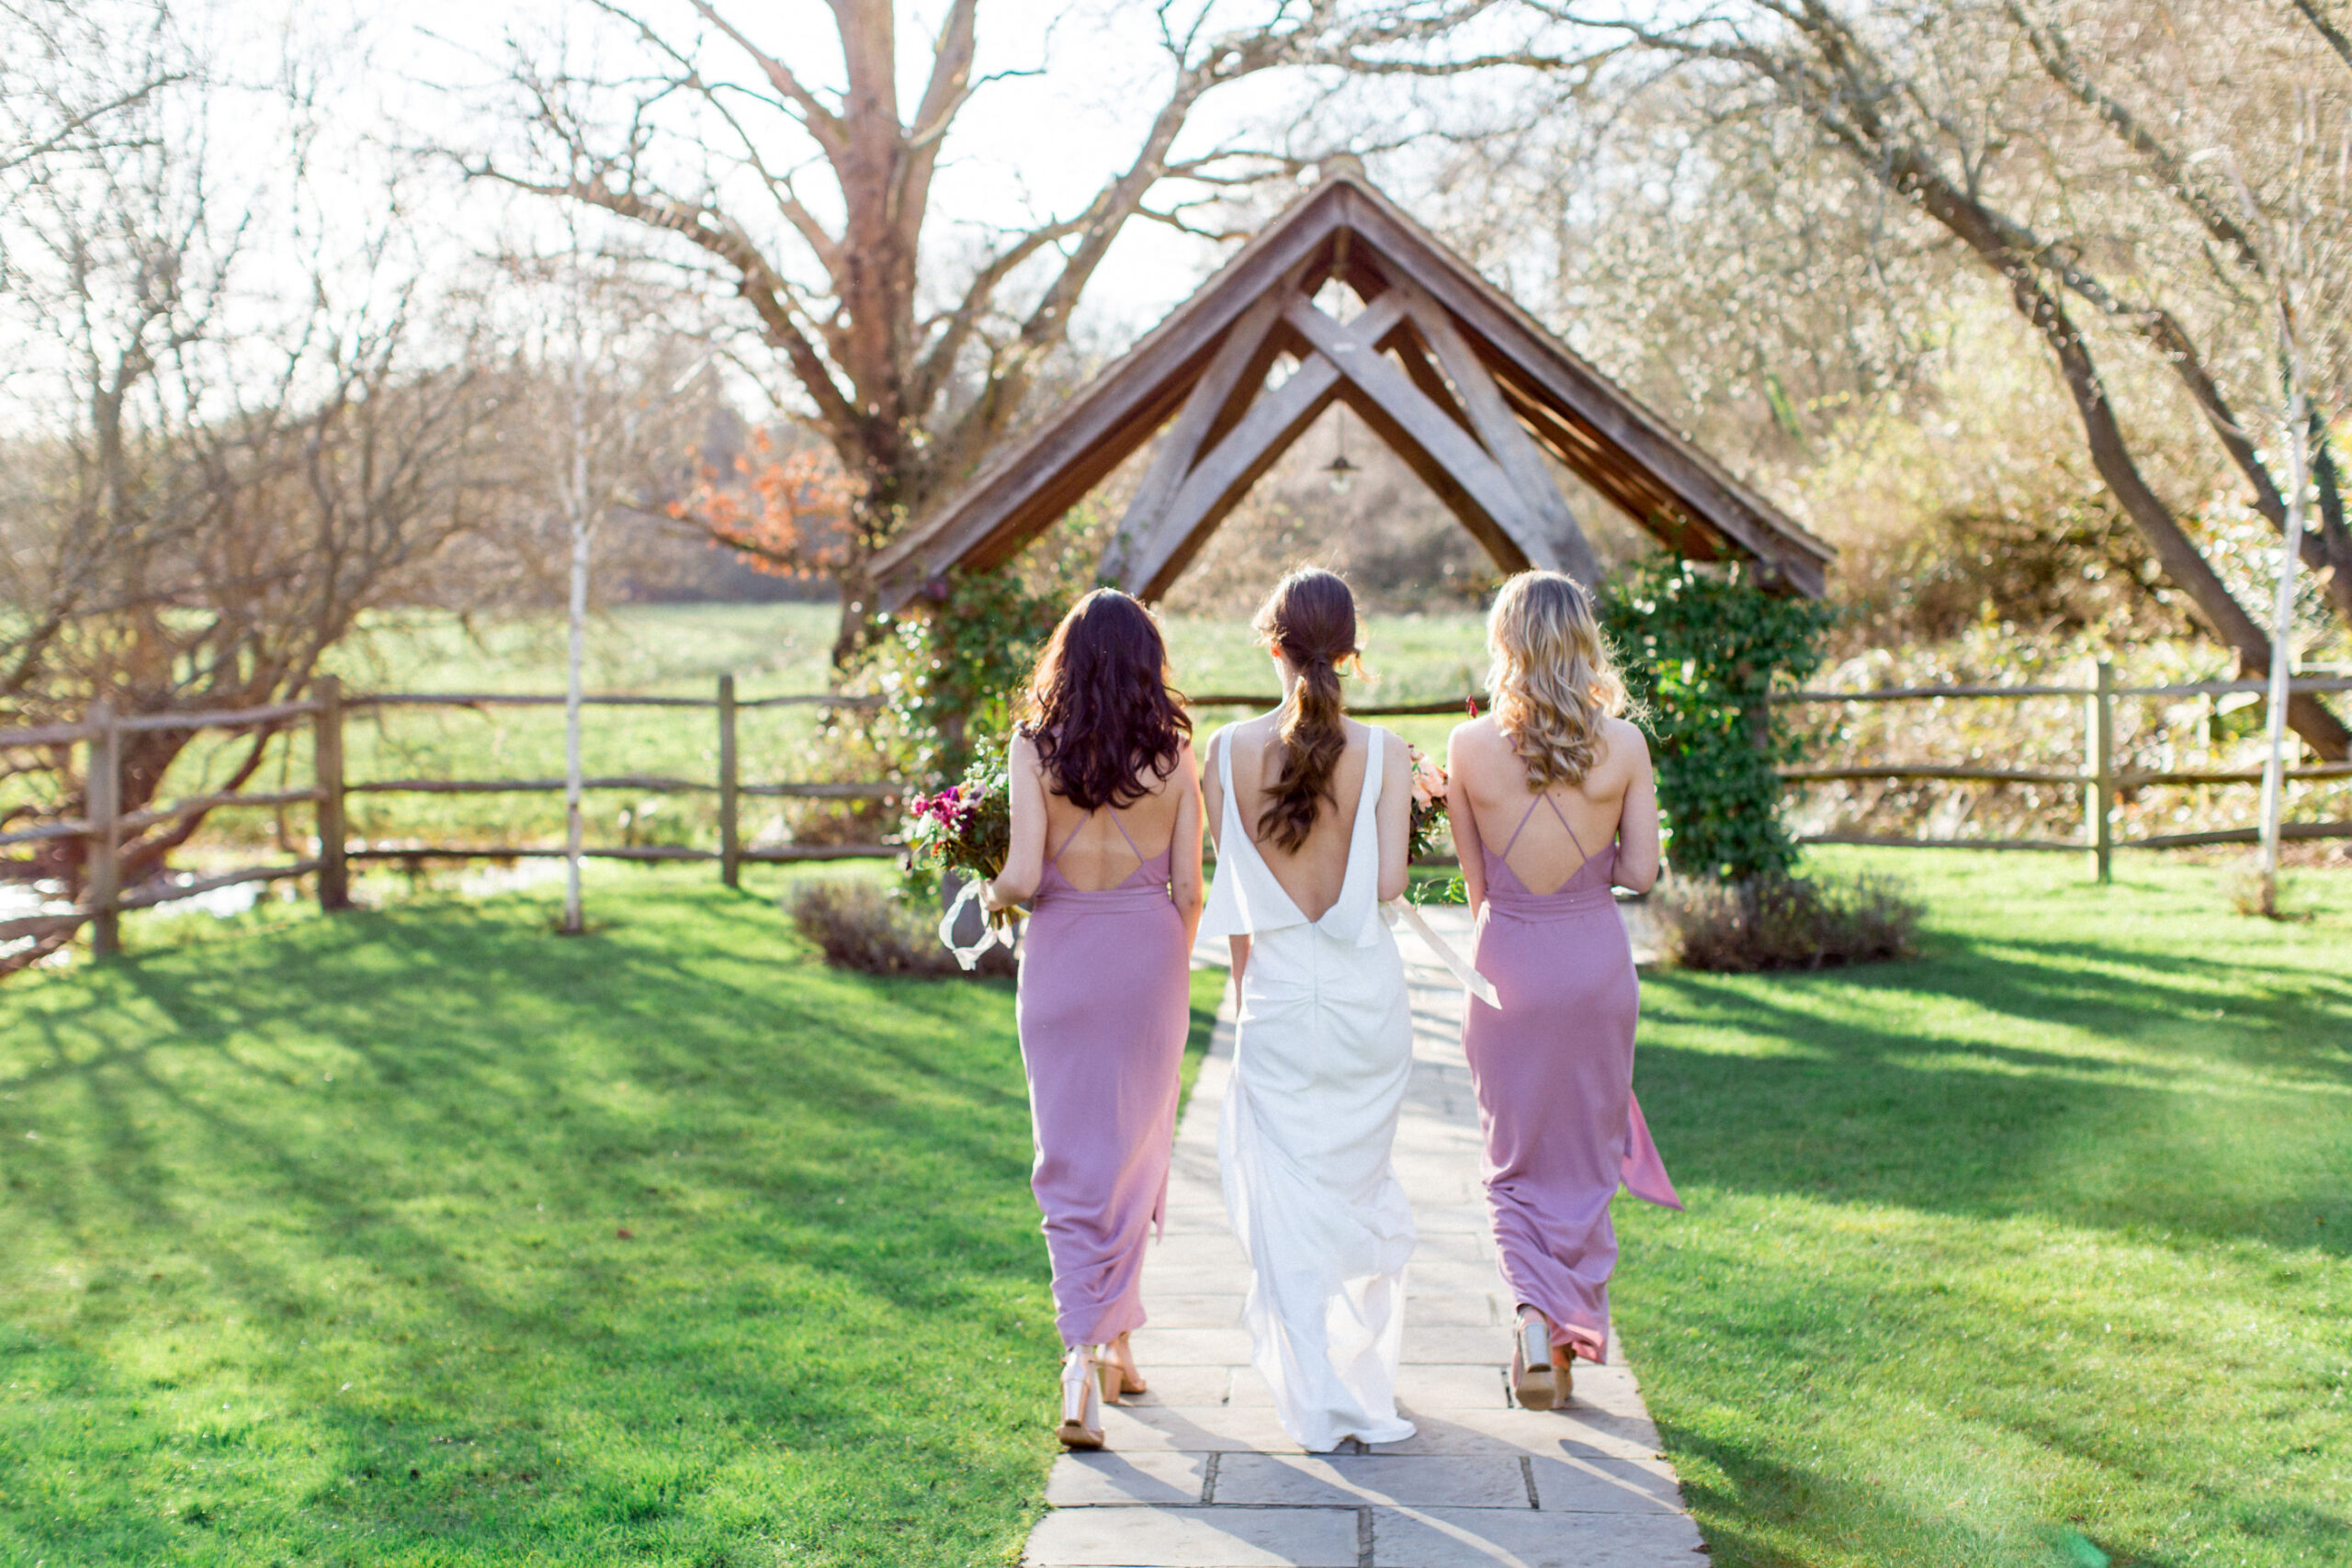 millbridgecourtstyledshoot-philippa-sian-photography-390 copy